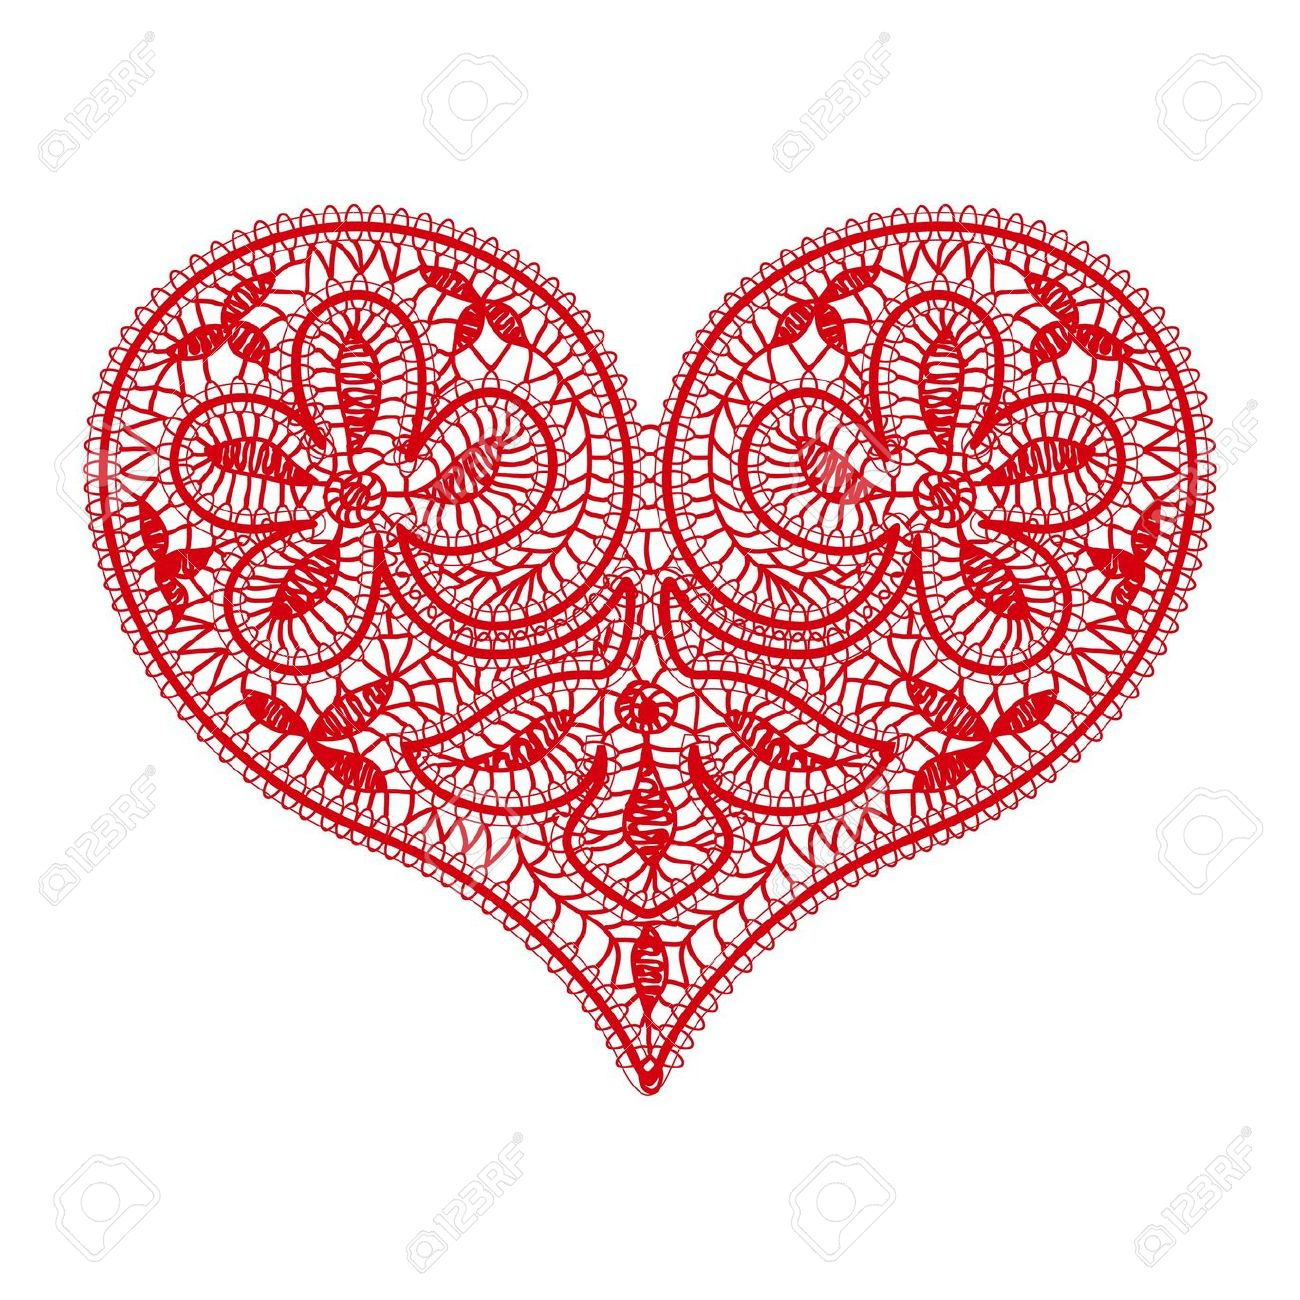 Valentines day clipart transparent hearts image library library Valentines day clipart transparent hearts - ClipartFest image library library